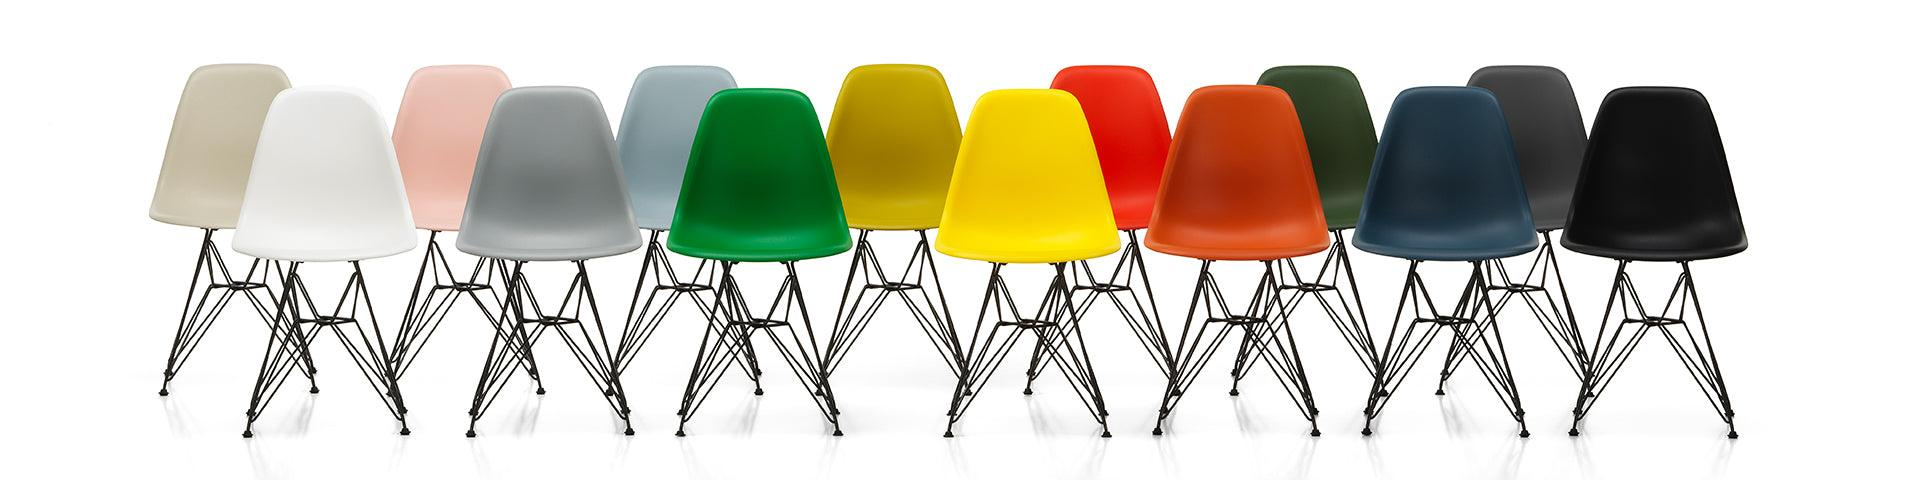 Eames DSR side chair, 1950